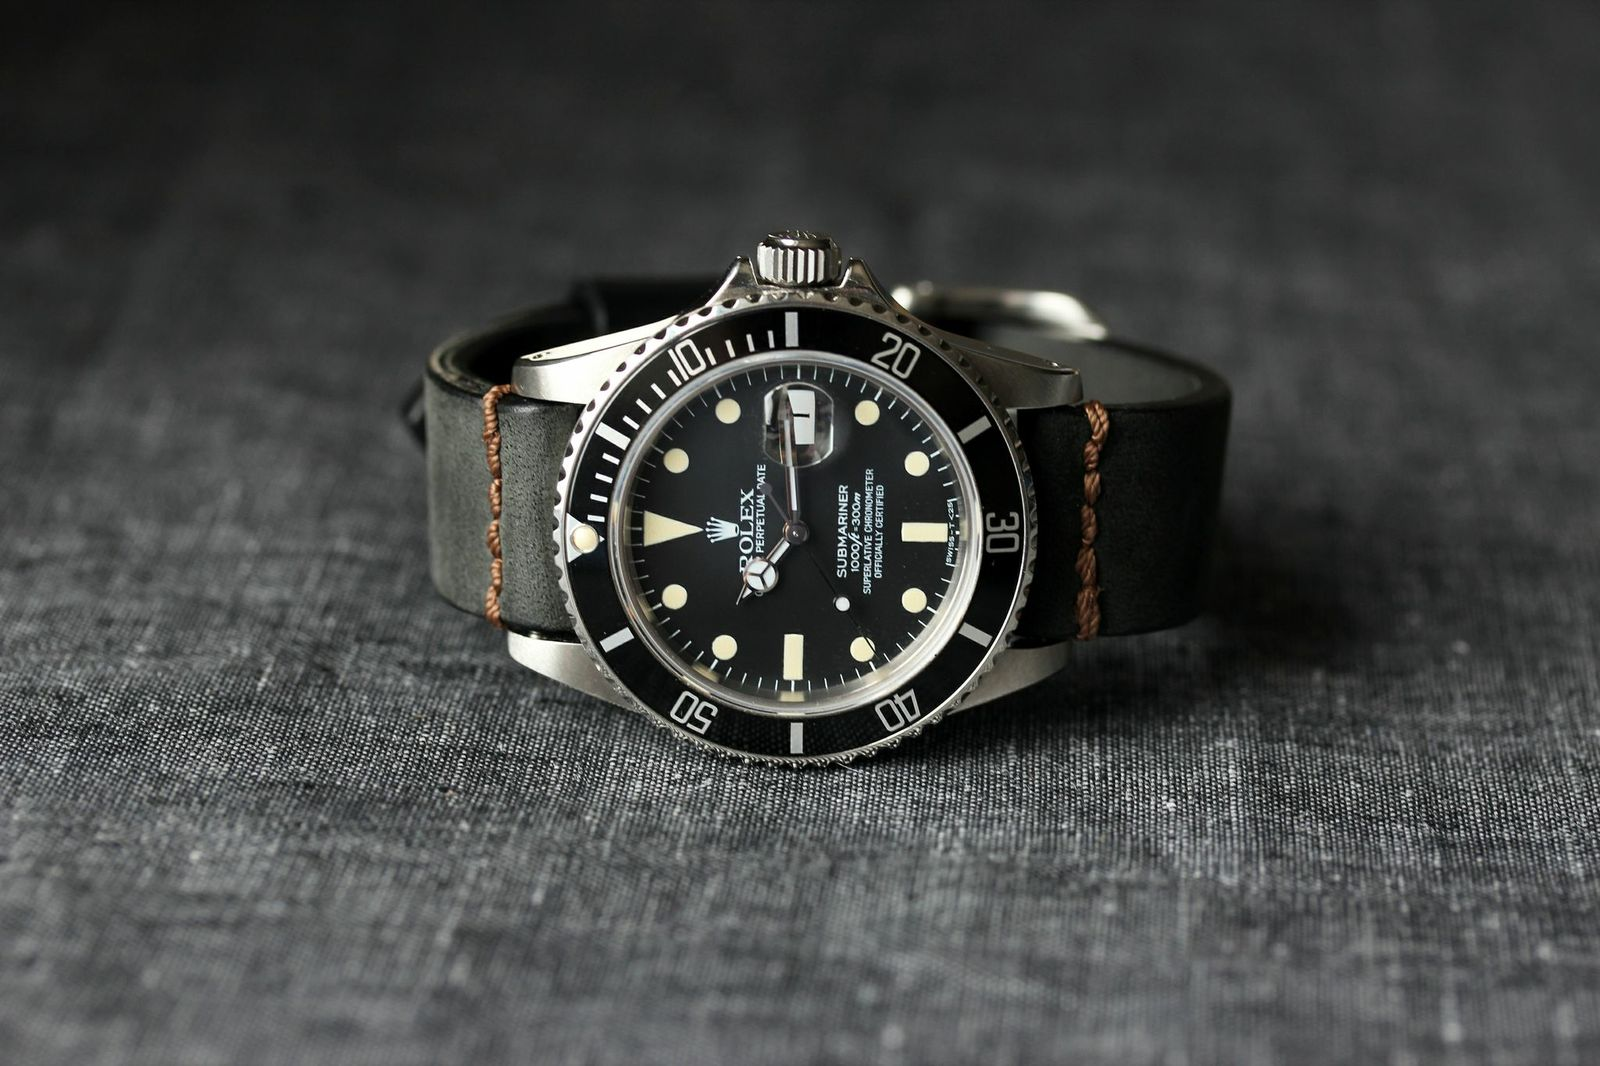 Rolex Submariner 1680 replica